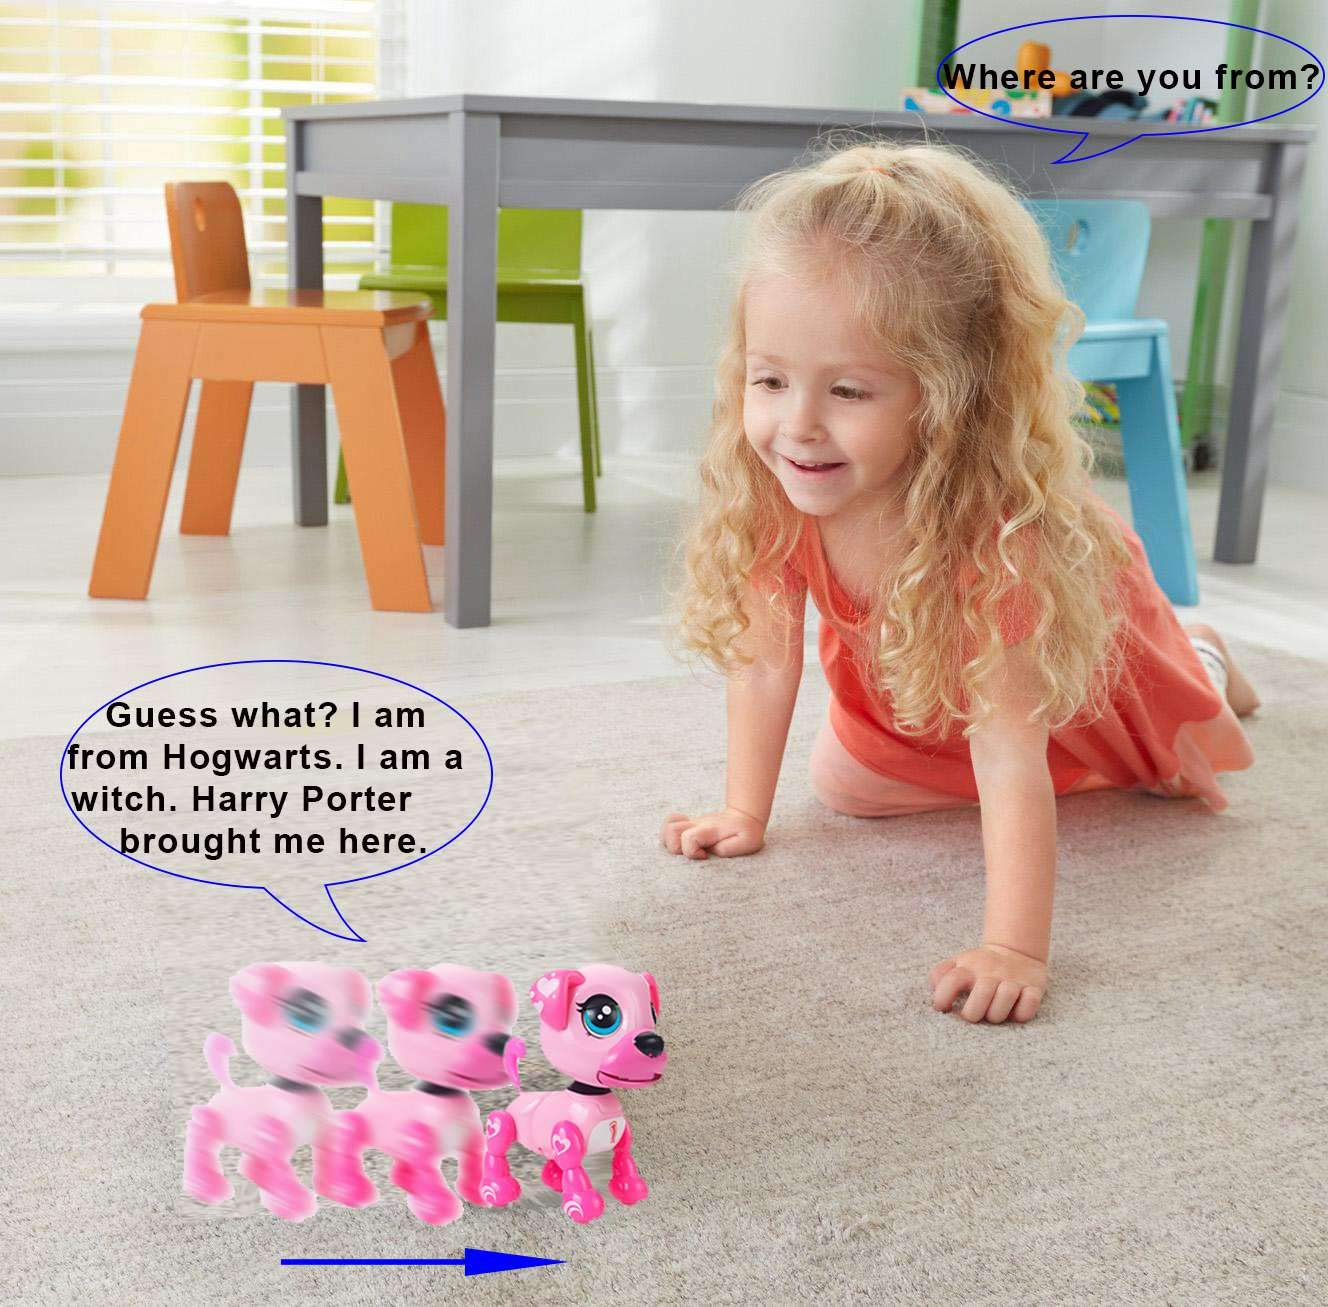 amdohai Interactive Puppy - Smart Pet, Electronic Robot Dog Toys for Age 3 4 5 6 7 8 Year Old Girls, Gifts Idea for Kids ● Voice Control&Intelligent Talking (Pink) by amdohai (Image #4)